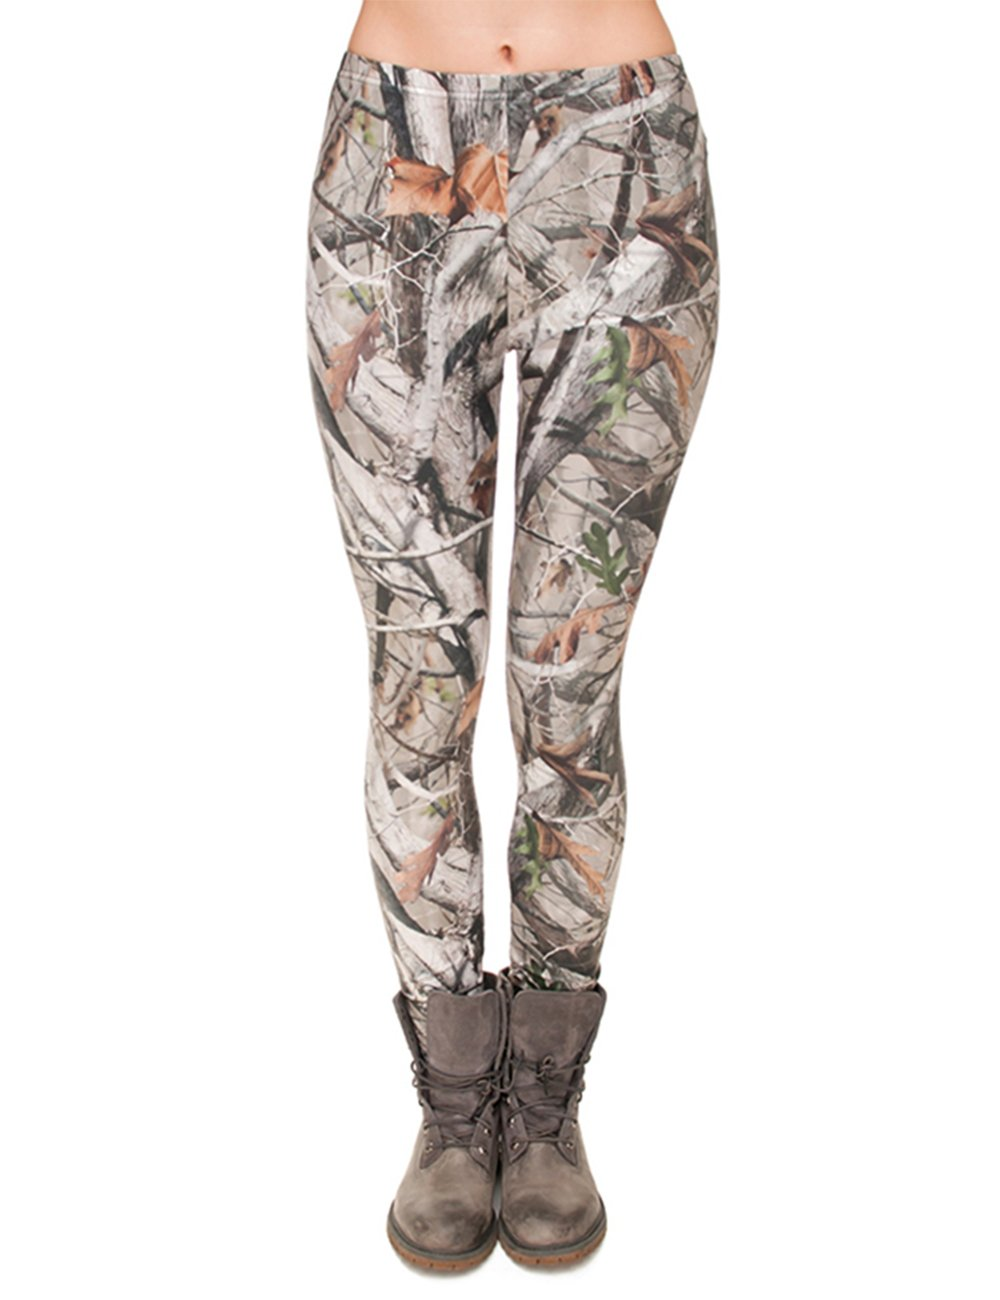 PINK PLOT Basic Printed Leggings Patterned High Elasticity Pants for Women Girls Plus Size-Fit L-XXL X Camo Trees